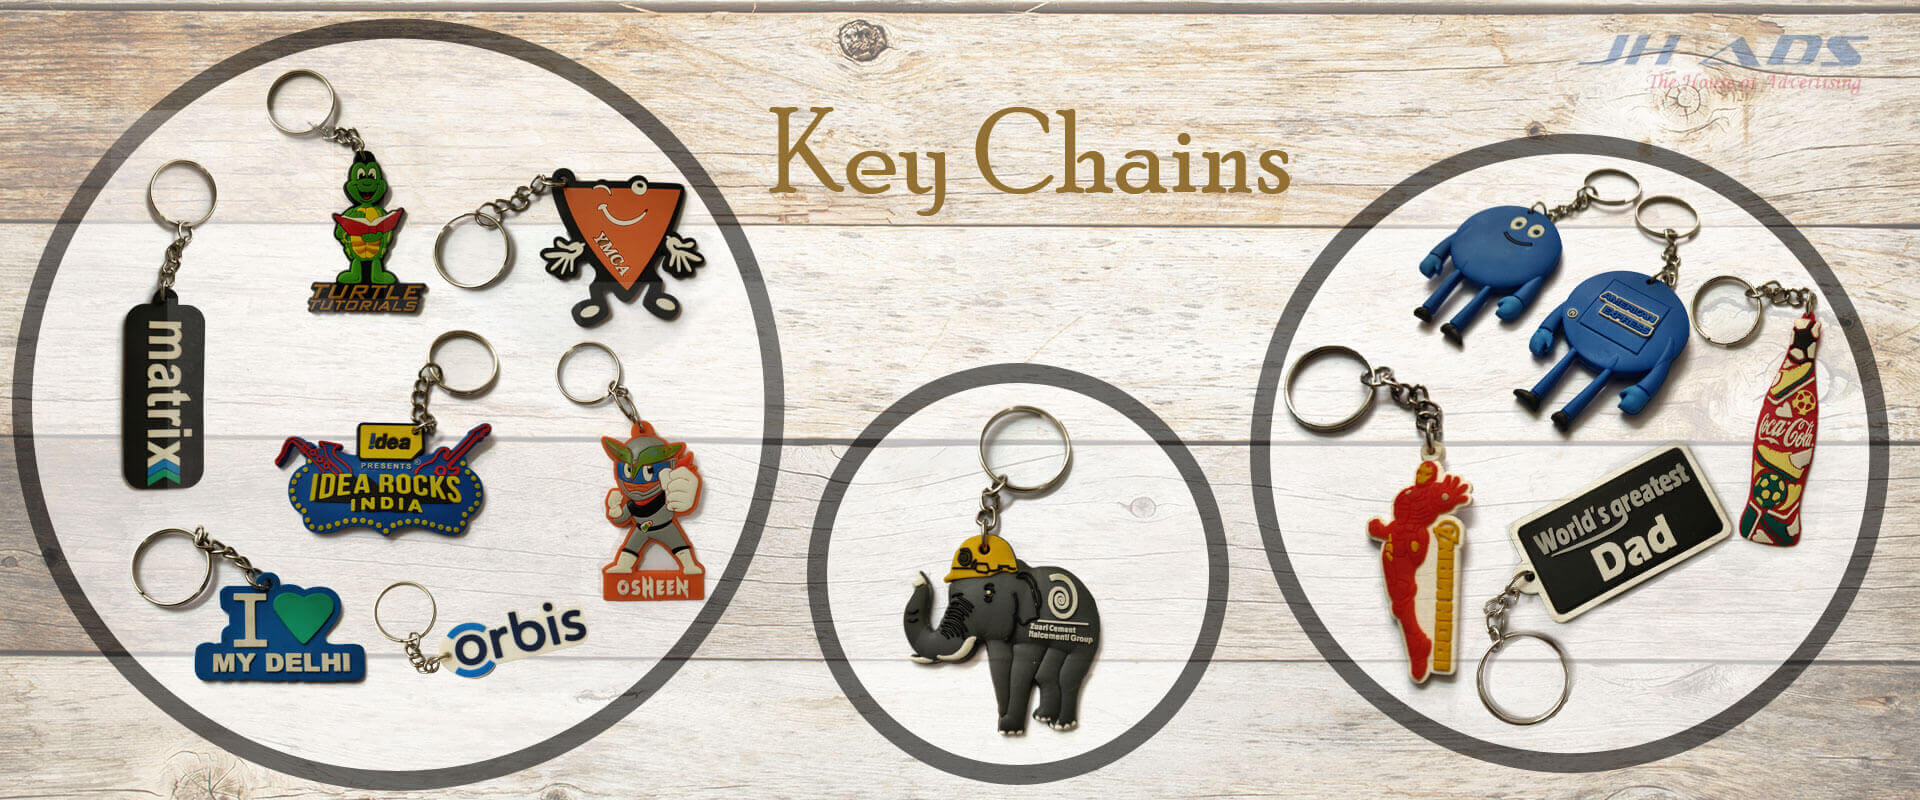 Key Chains In Sitamarhi